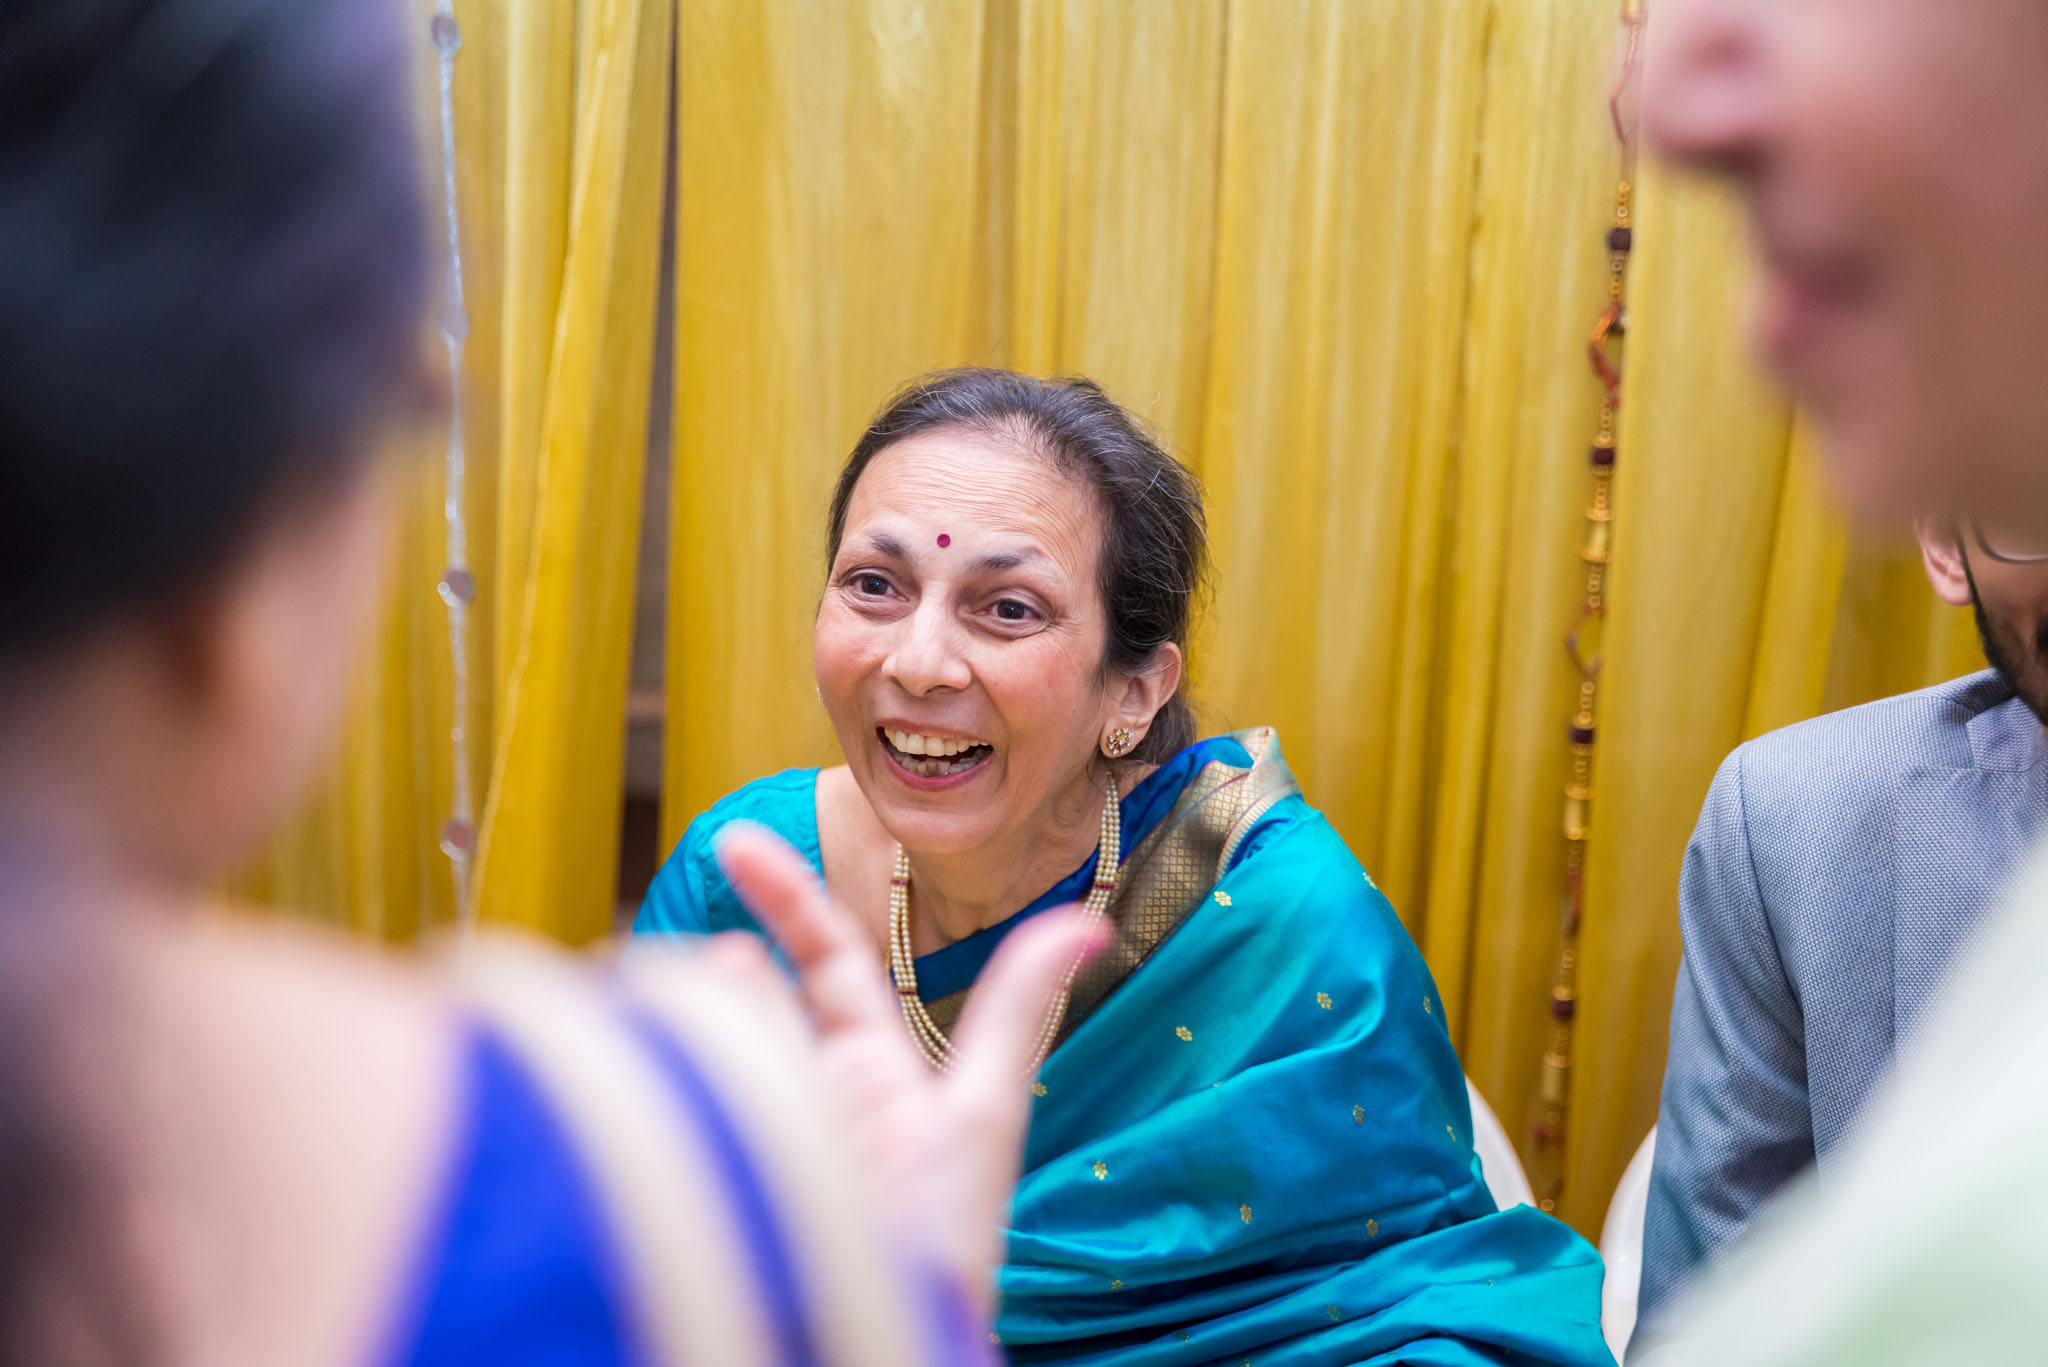 WhatKnot-Candid-Wedding-Photography-Mumbai-Bangalore-116